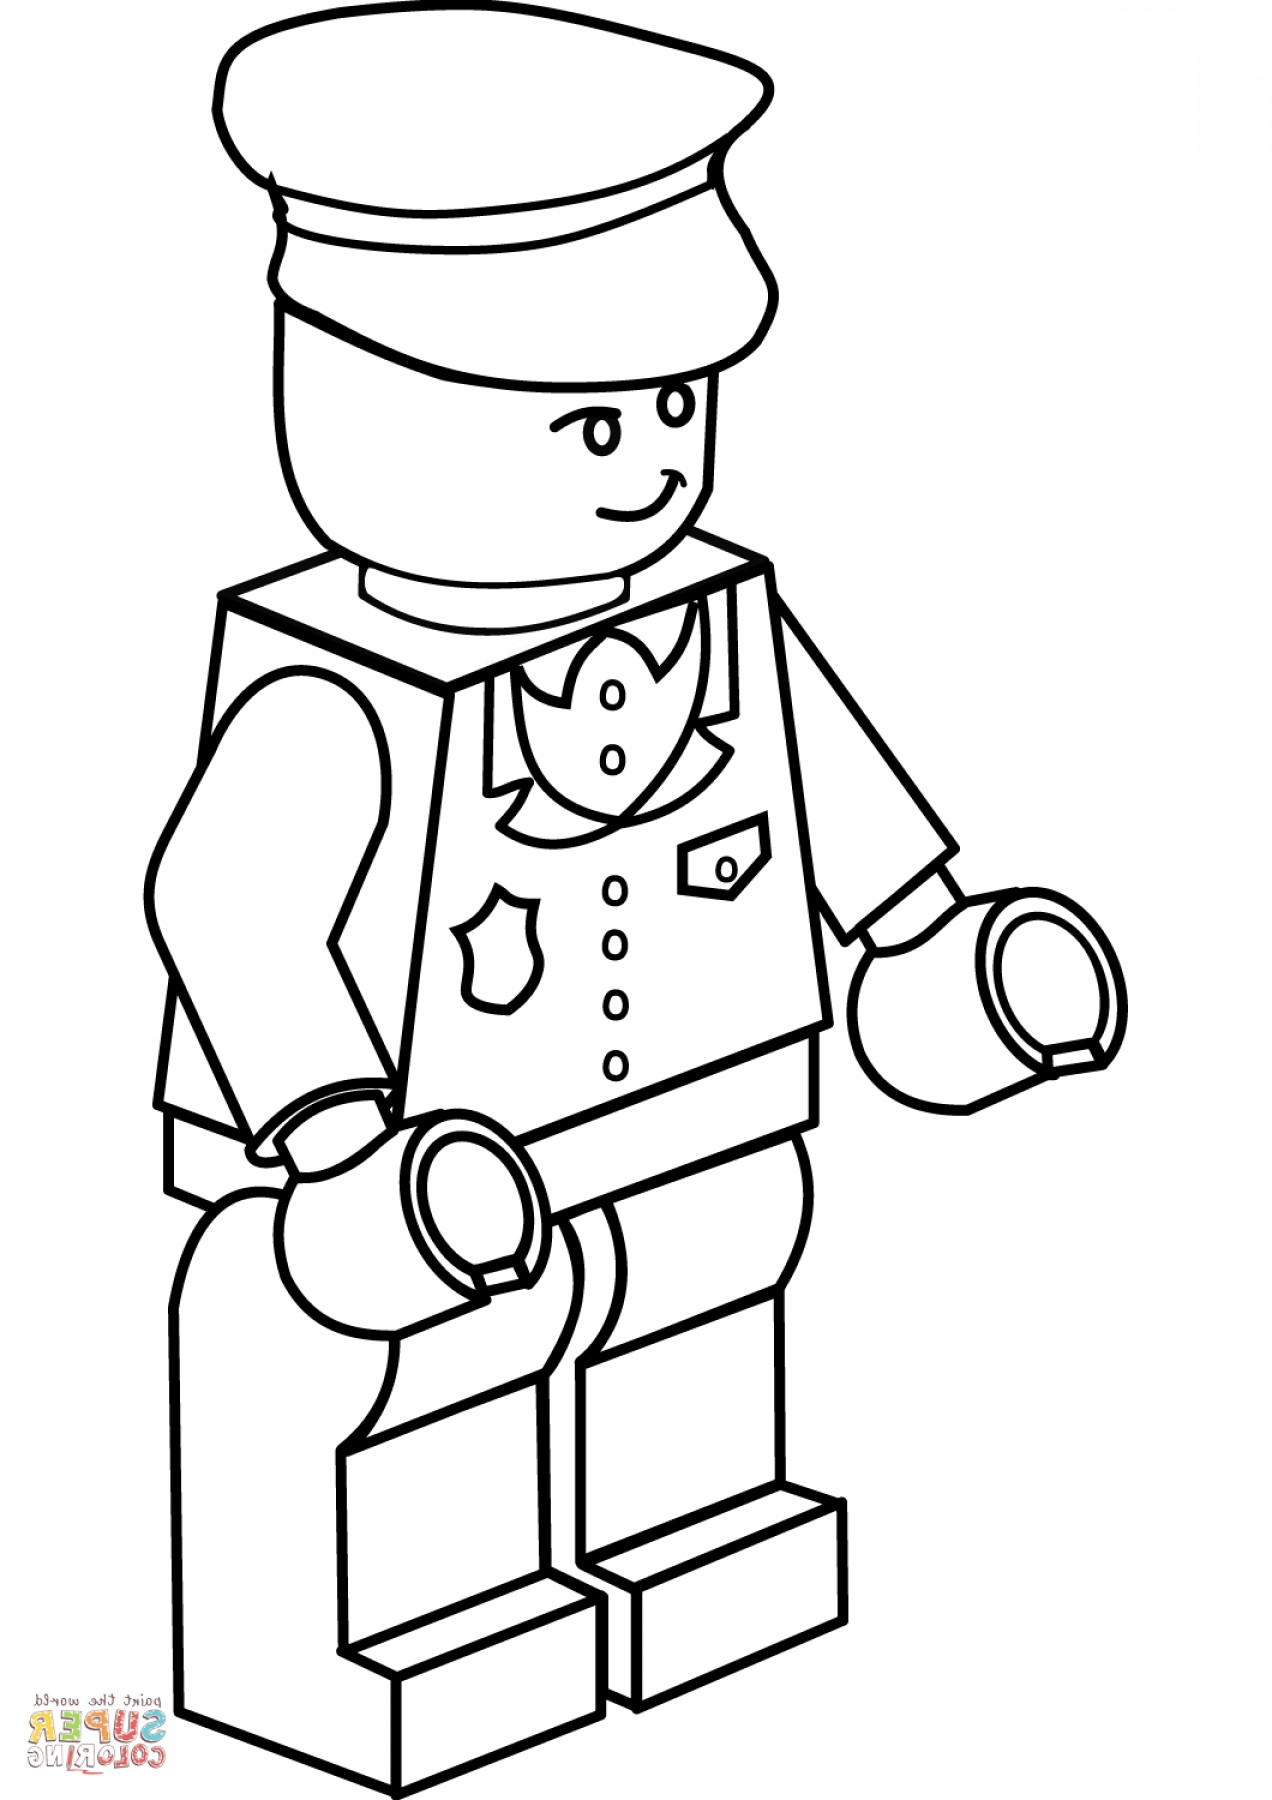 1272x1800 Lego Guy Coloring Pages Ardiafm